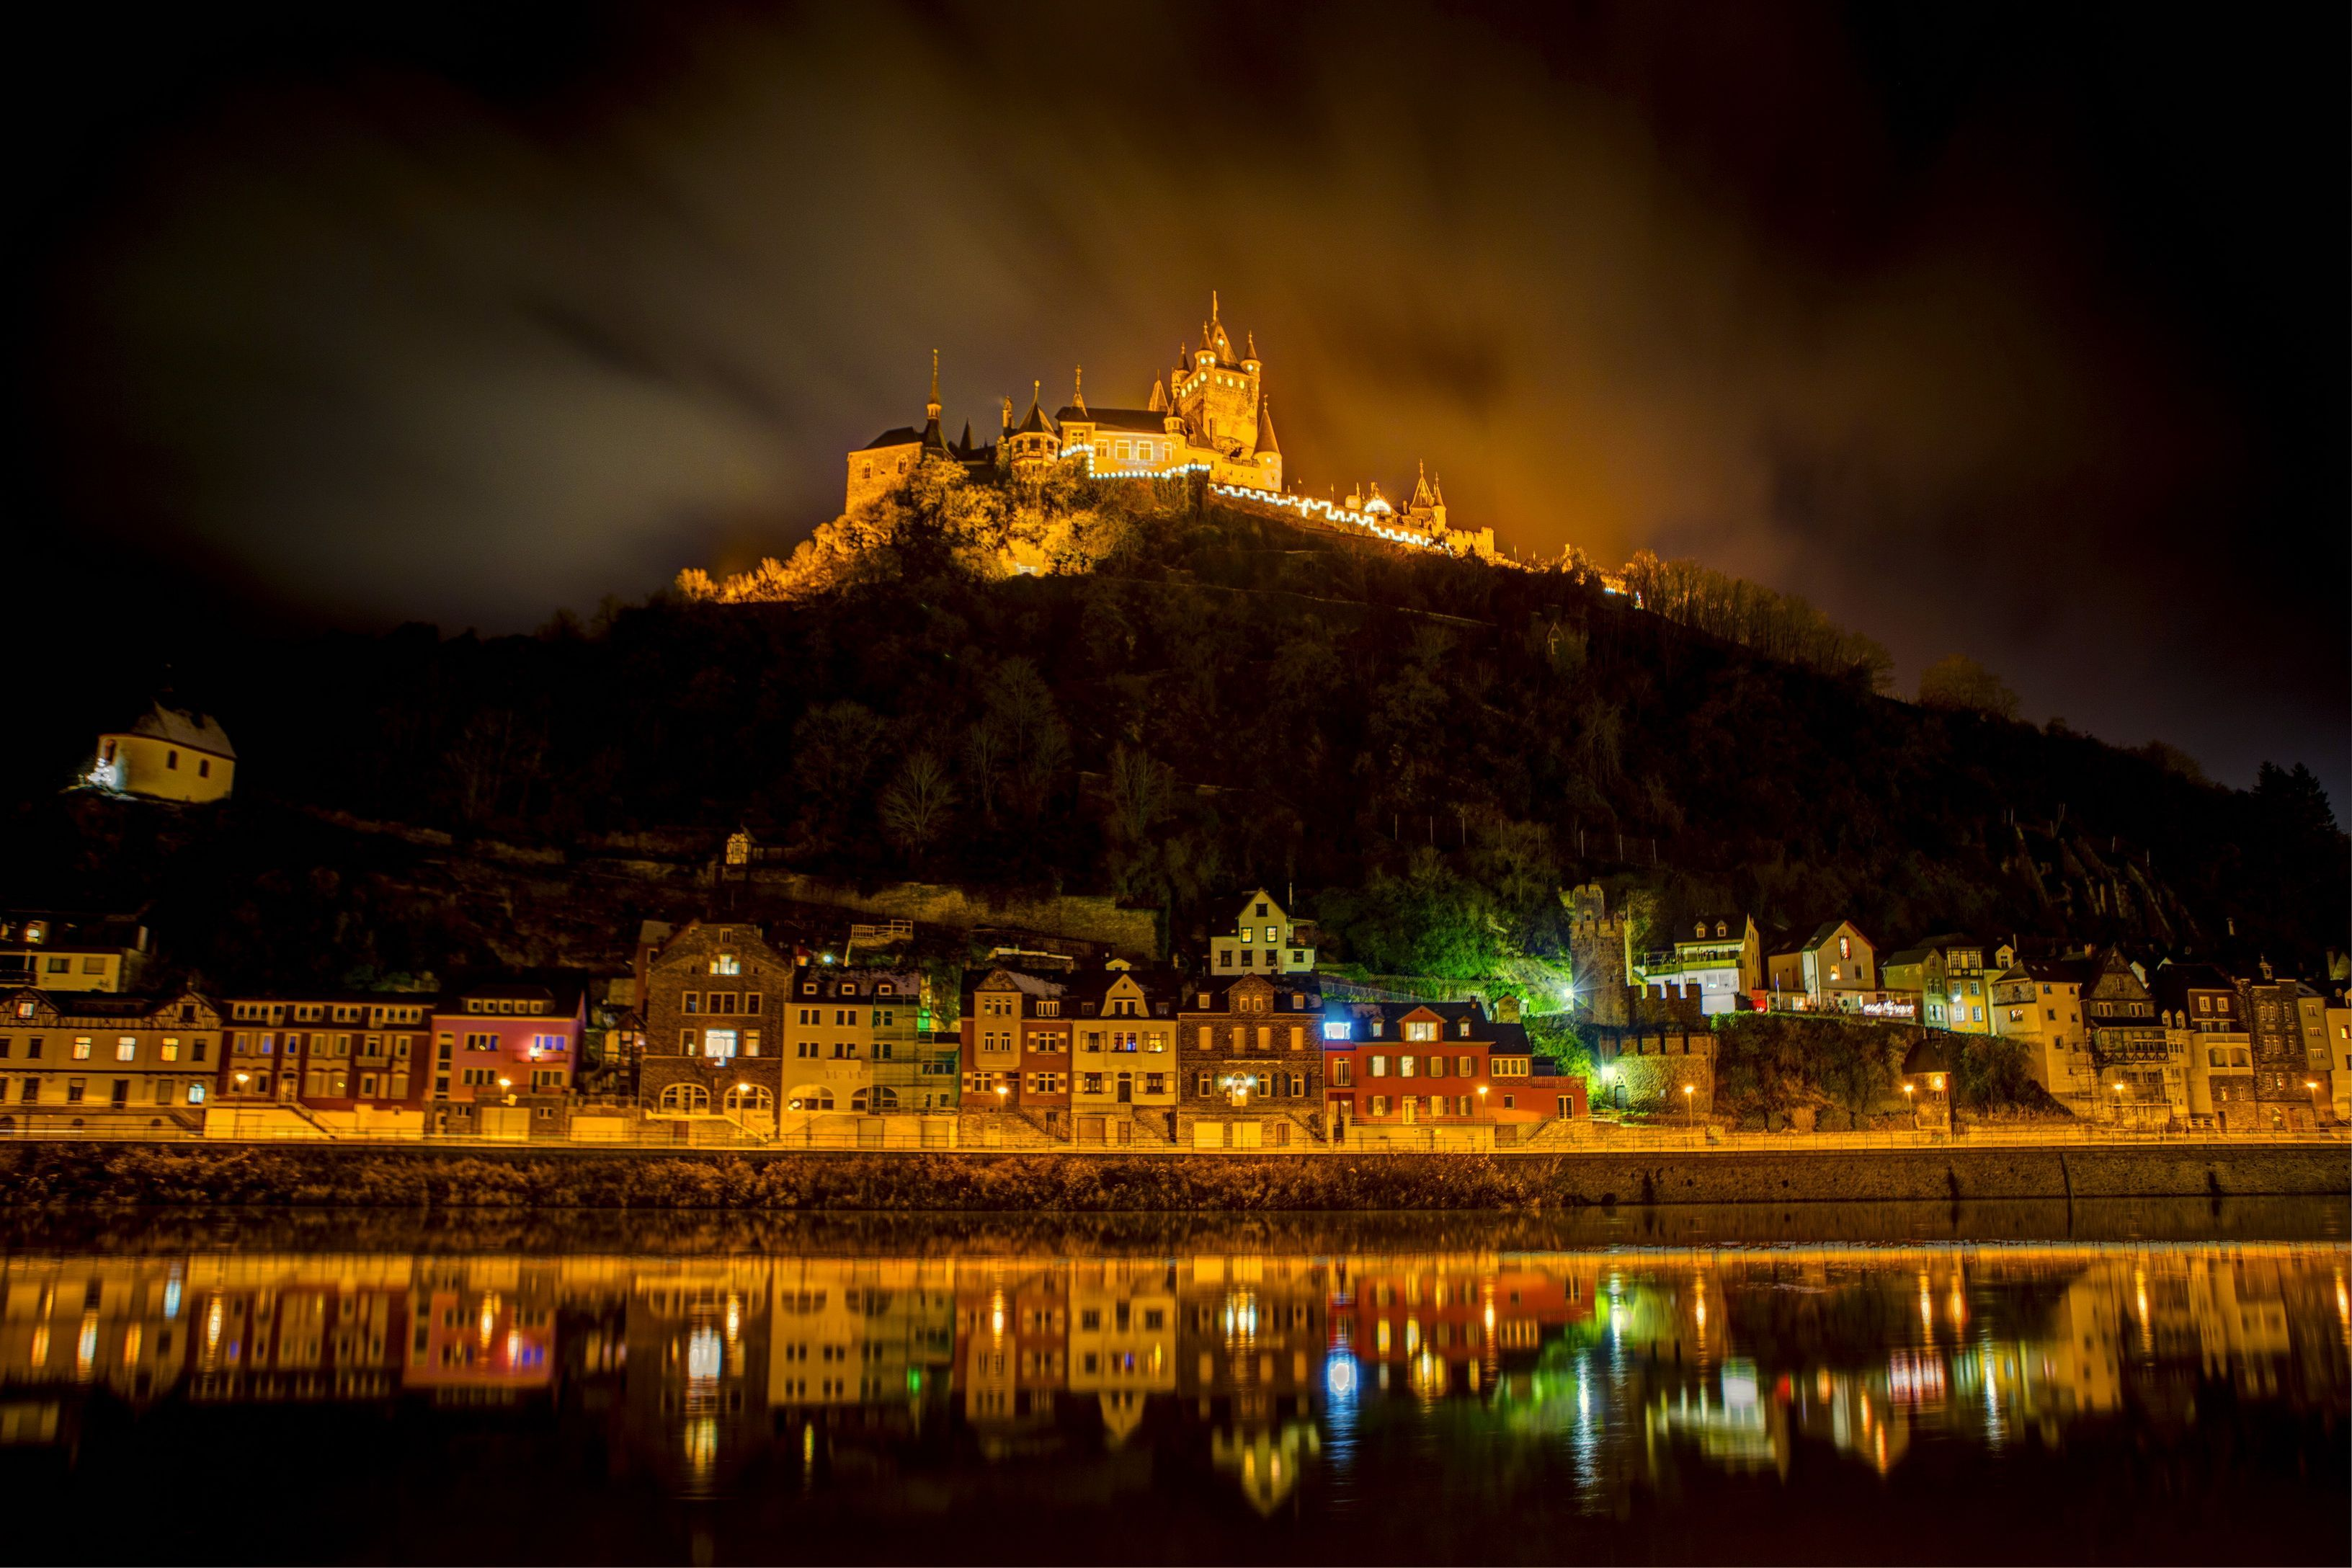 Germany Castles Fortress home River cochem burg night - HD wallpaper desktop backgrounds